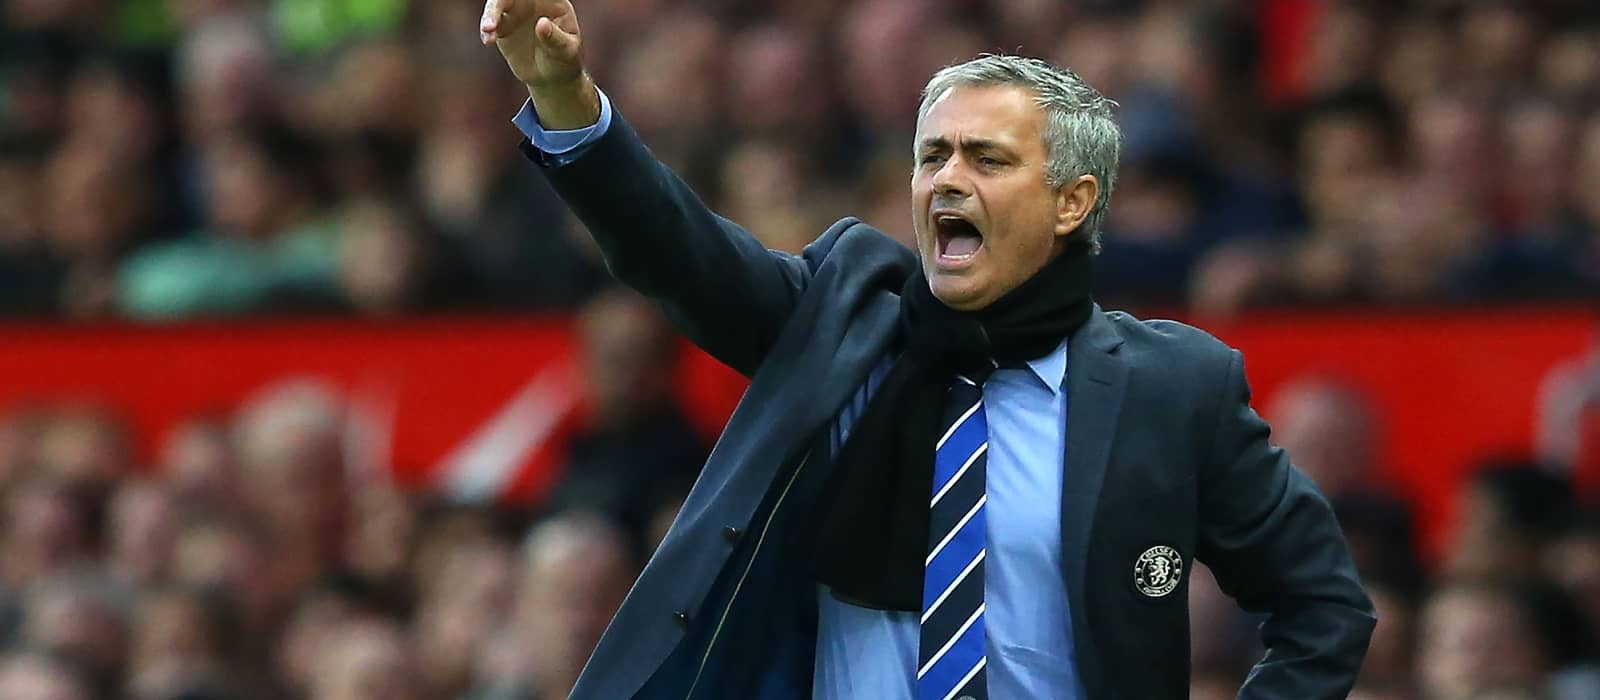 Manchester United news round-up including Mourinho, Marquinhos and Powell